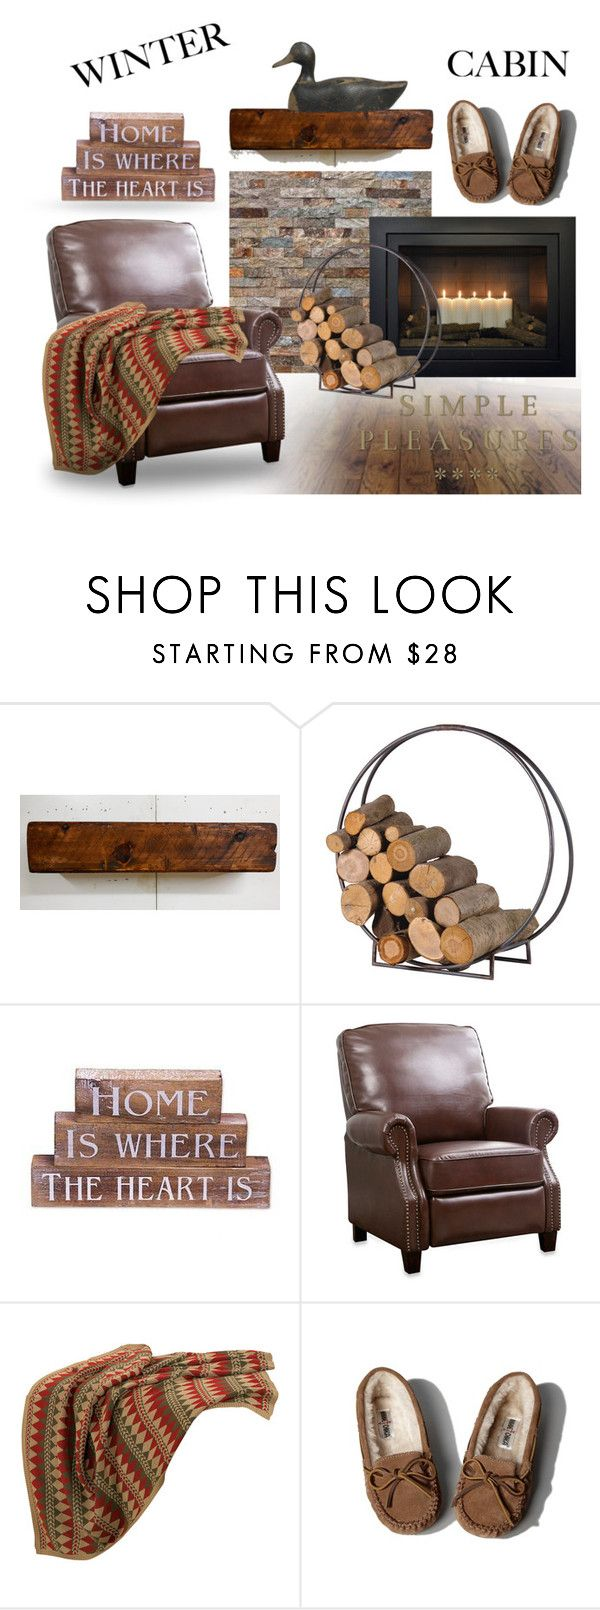 15 best A&F HONG KONG images on Pinterest | Abercrombie fitch, Hong ...